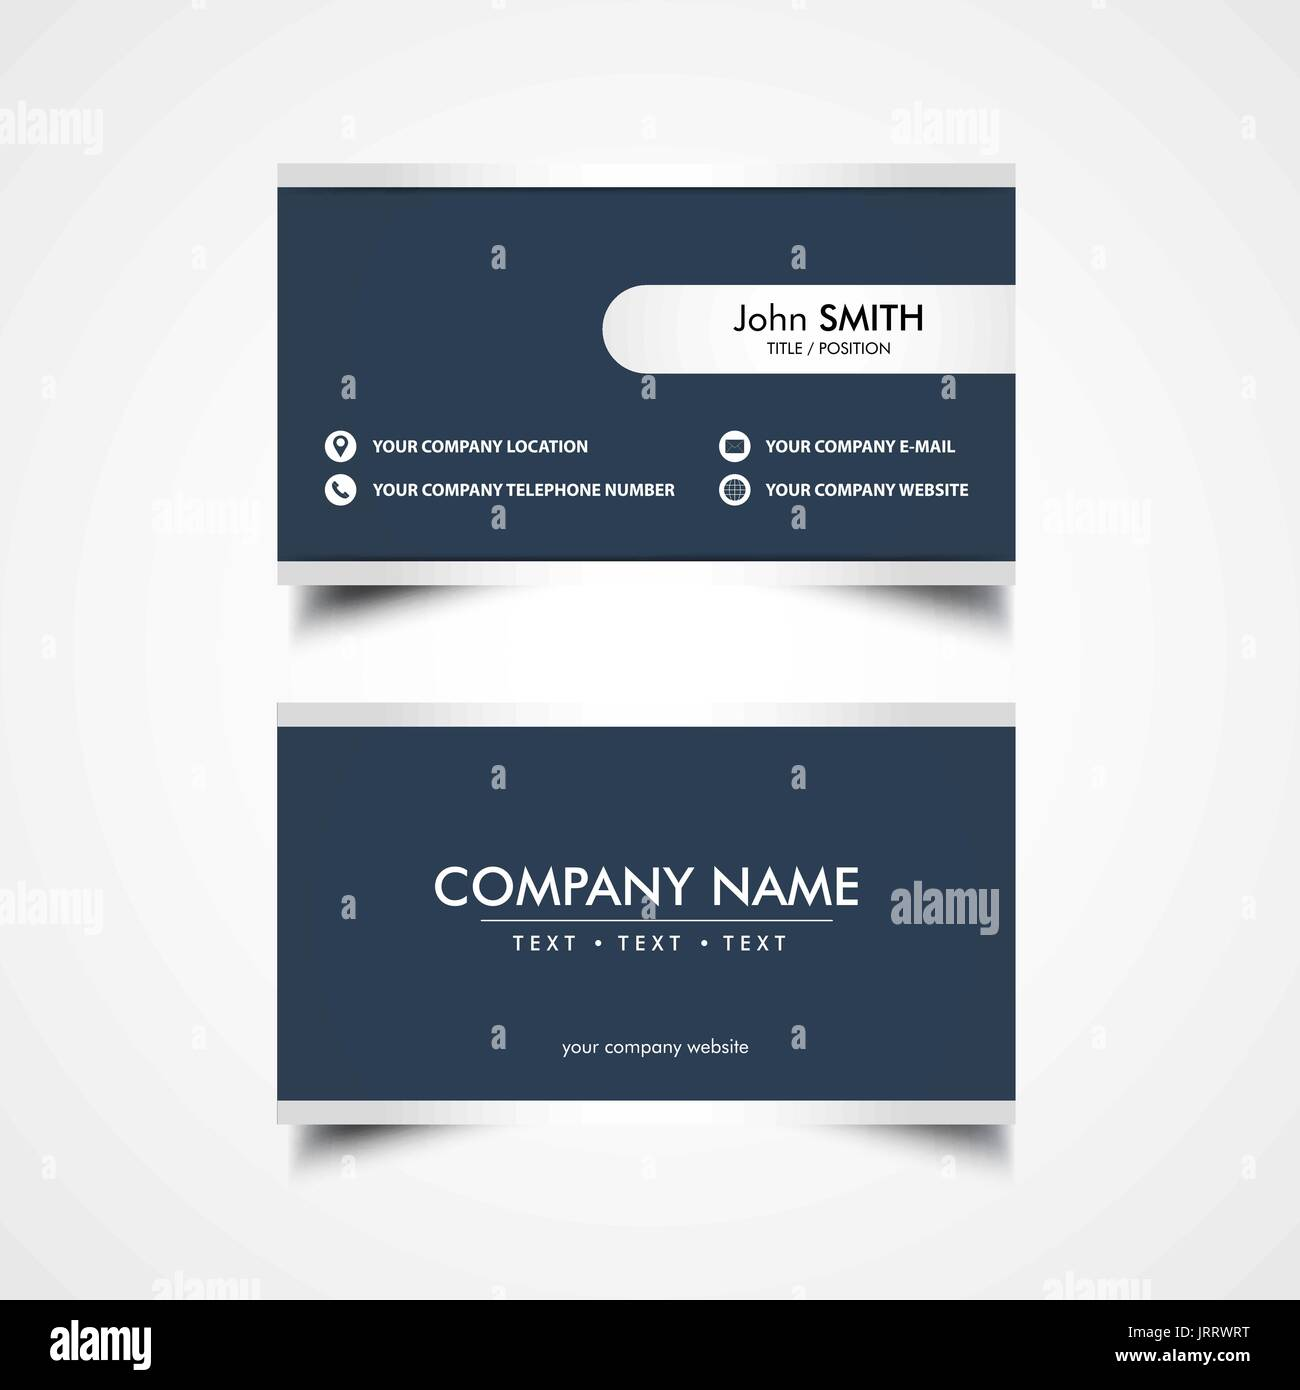 Simple Business Card Template, Vector, Illustration - Stock Image